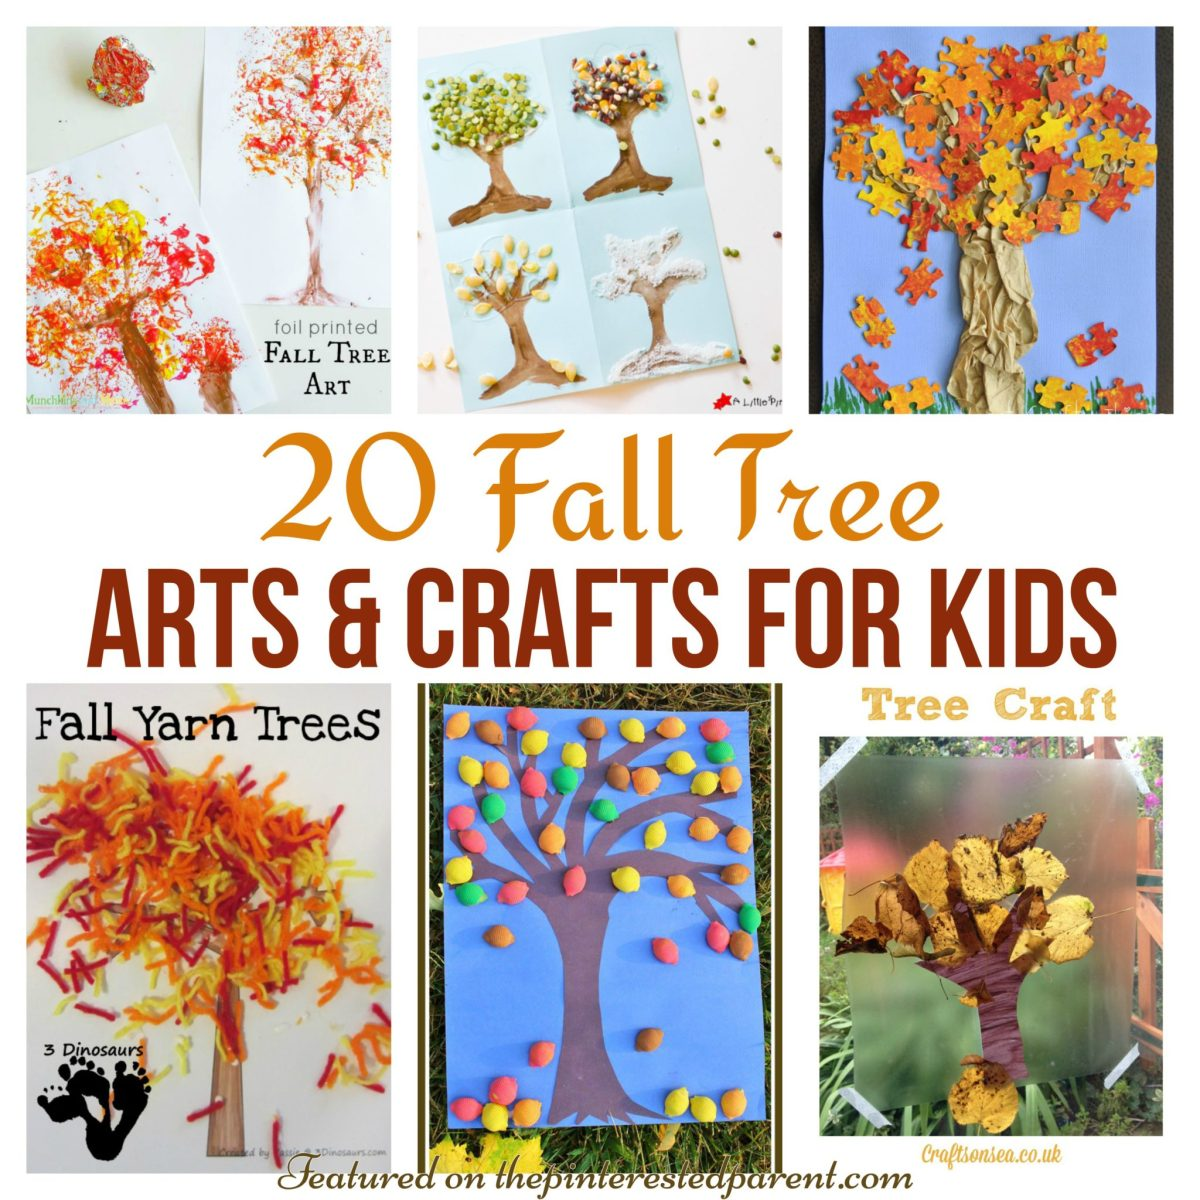 20 Fall Tree Arts & Crafts Ideas For Kids